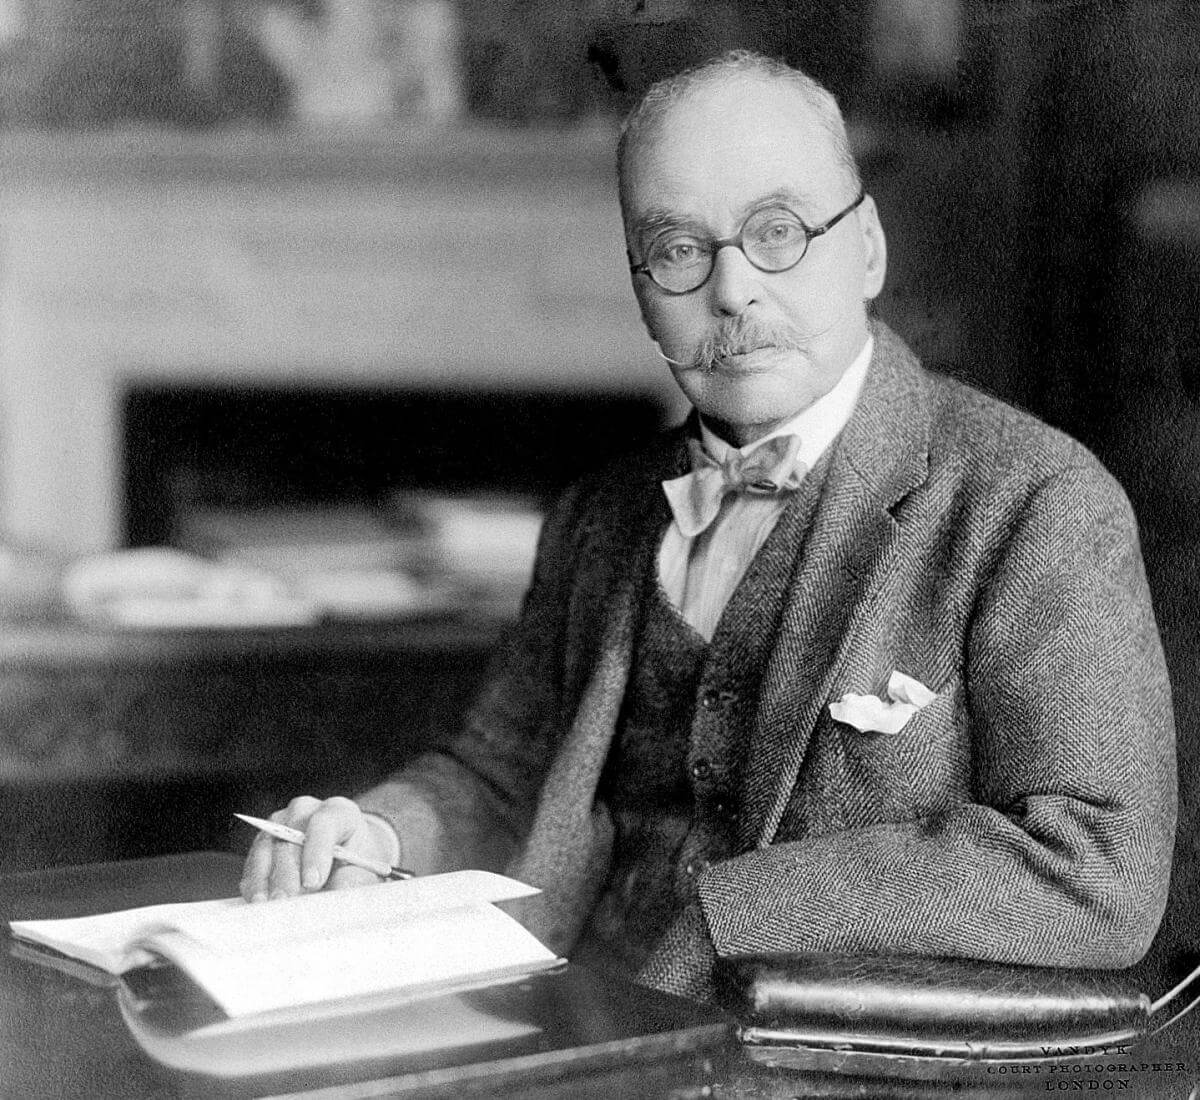 Ronald Ross, date unknown. Courtesy of Wikimedia Commons. Creative Commons license CC BY 4.0.